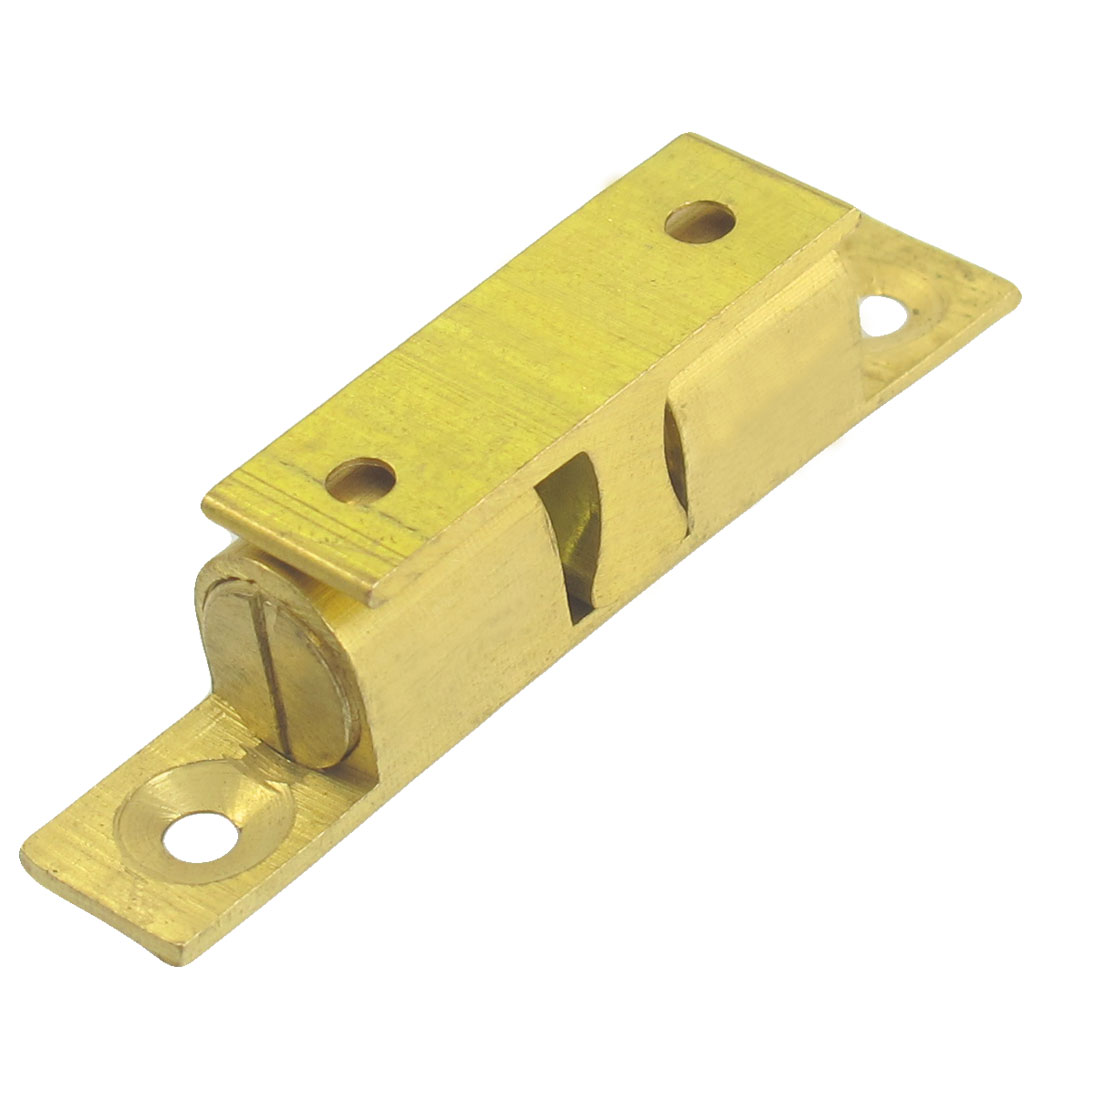 Cabinet Doors Brass Double Ball Catch Hardware 60mm Long